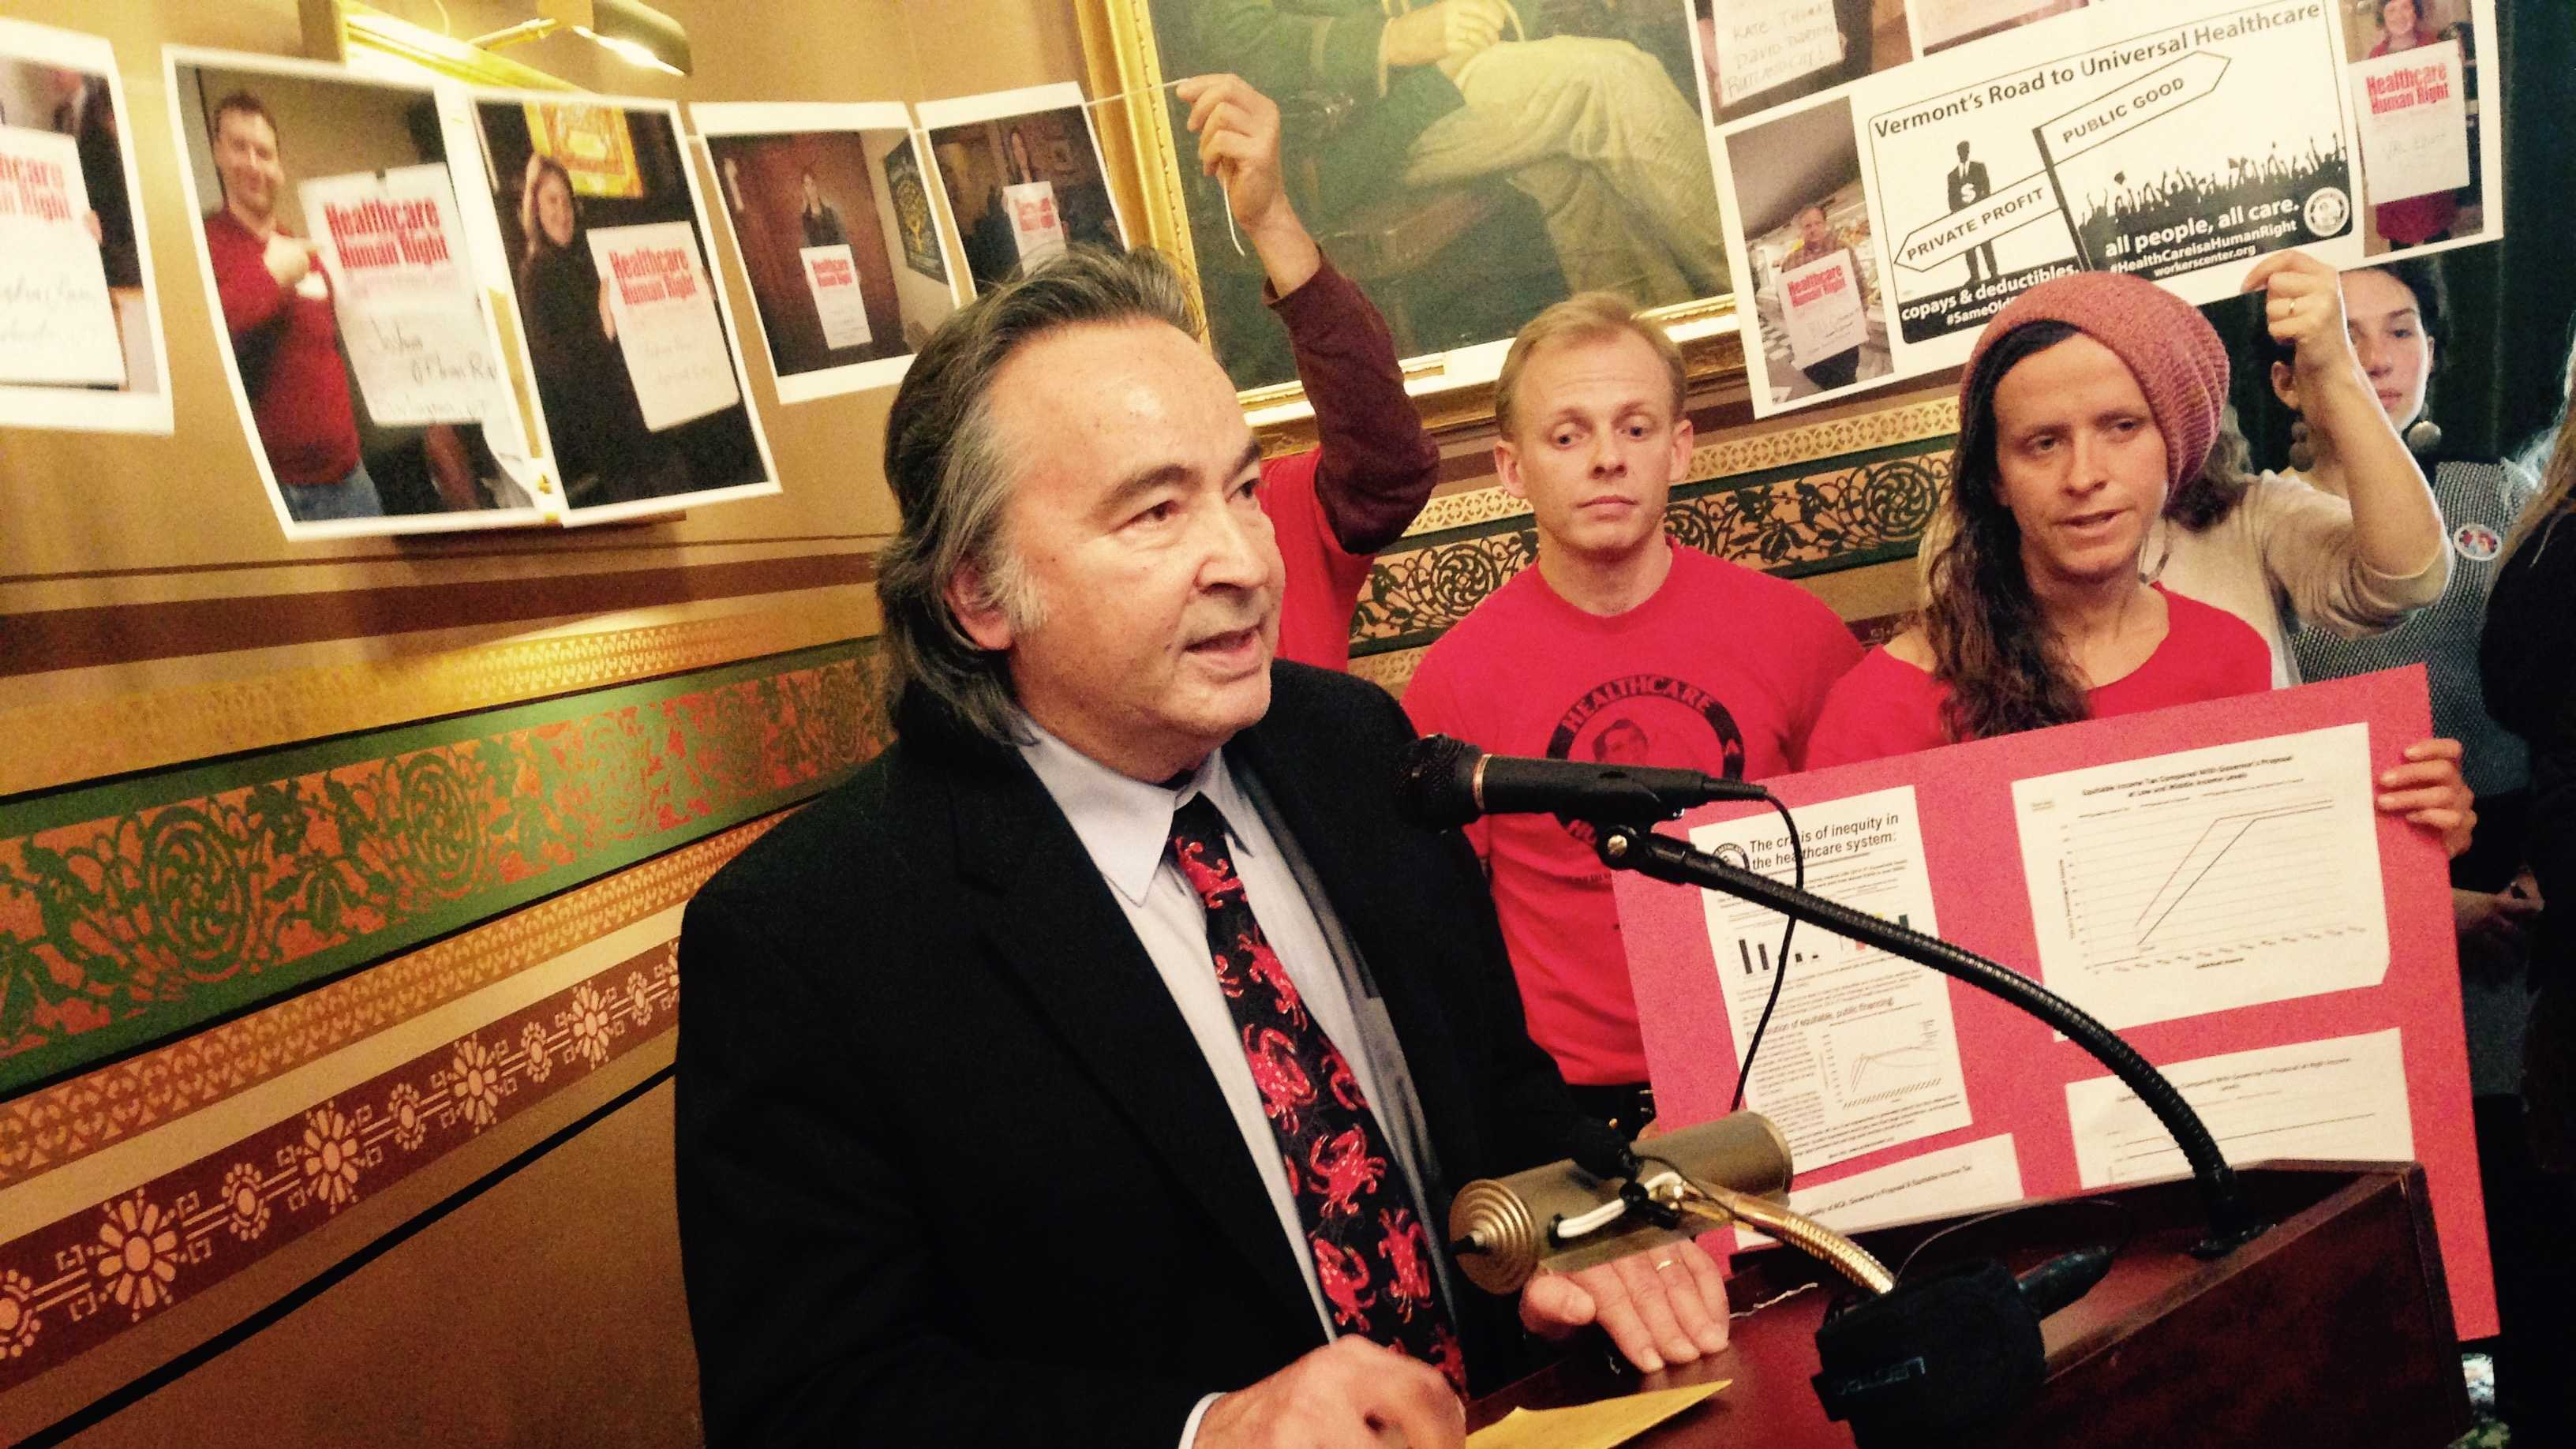 Sen. Anthony Pollina speaks Thursday at a Statehouse rally intended to advance universal health care reform this year.